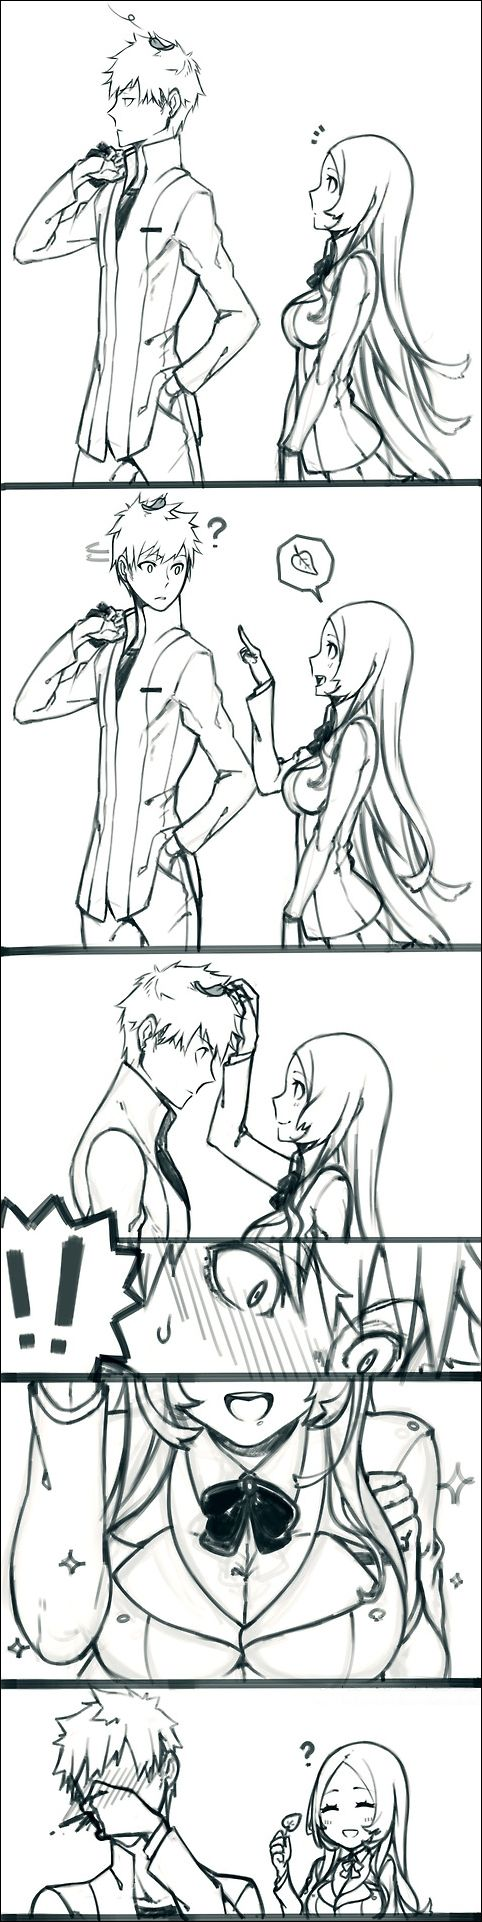 Bleach - Ichigo and Orihime  I'm not for them but this is funny!